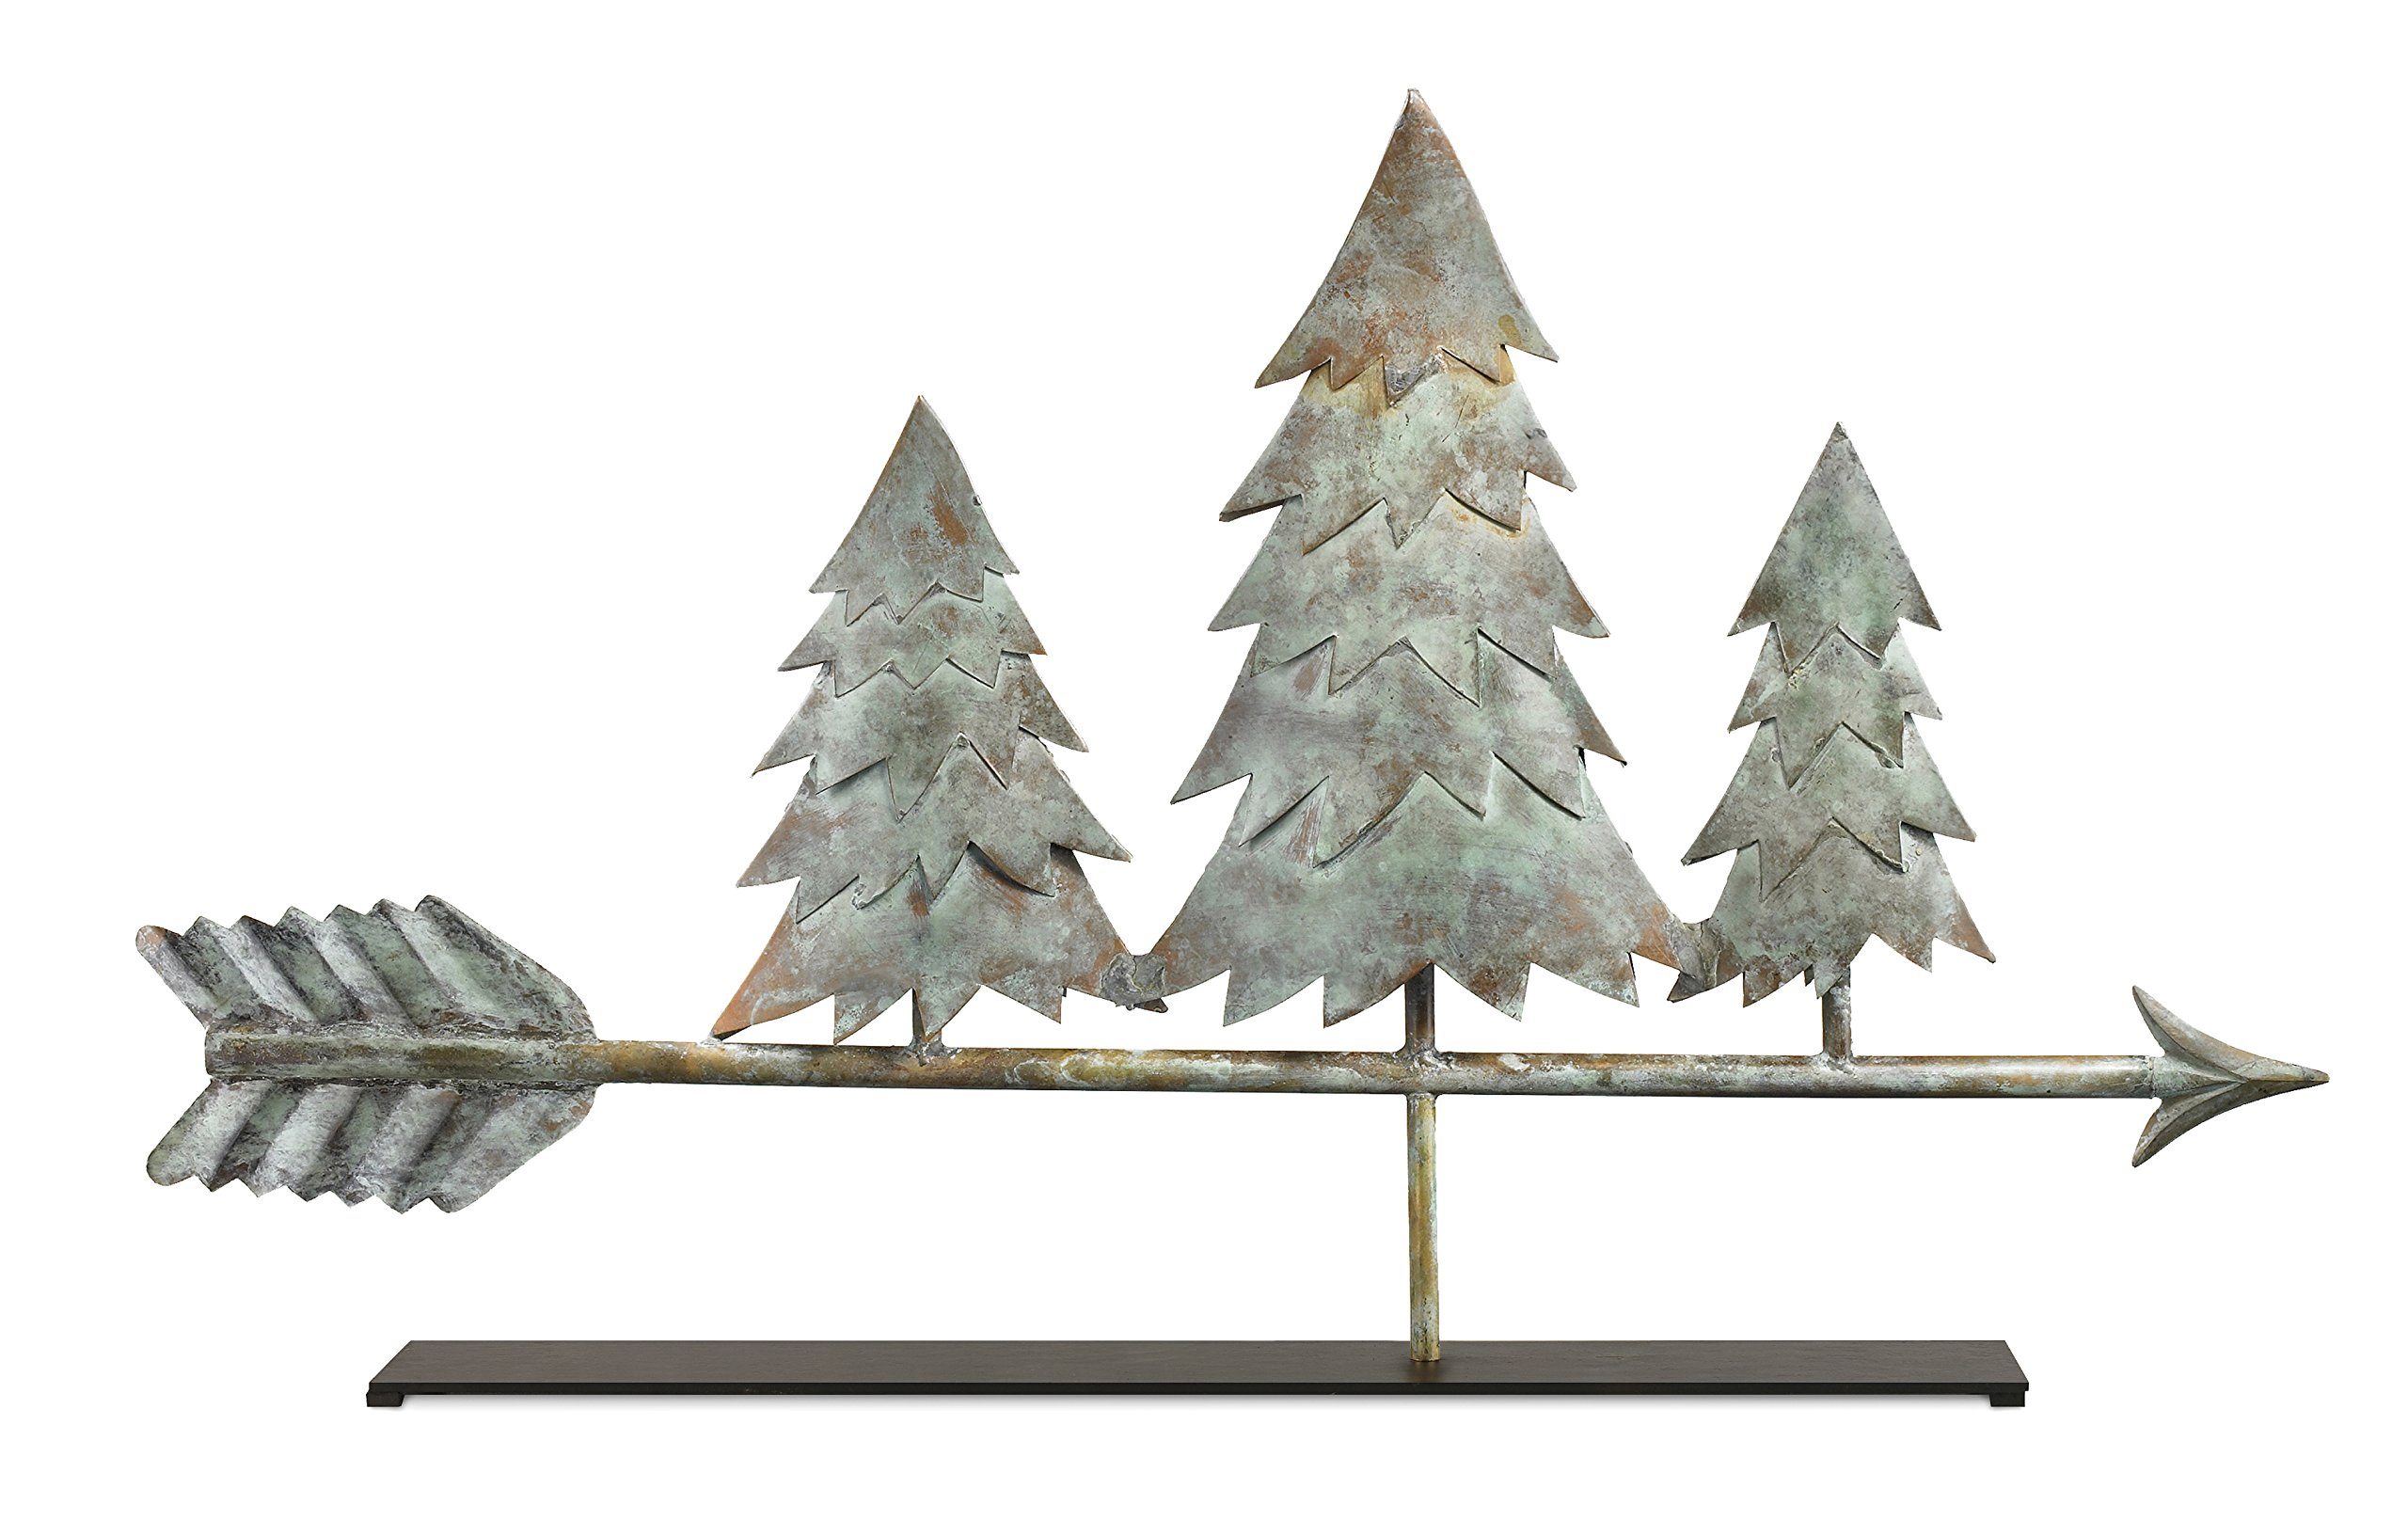 Good Directions Pine Trees Weathervane Sculpture on Mantel / Fireplace Stand, Blue Verde Pure Copper, Nature Home Décor, Tabletop Accent